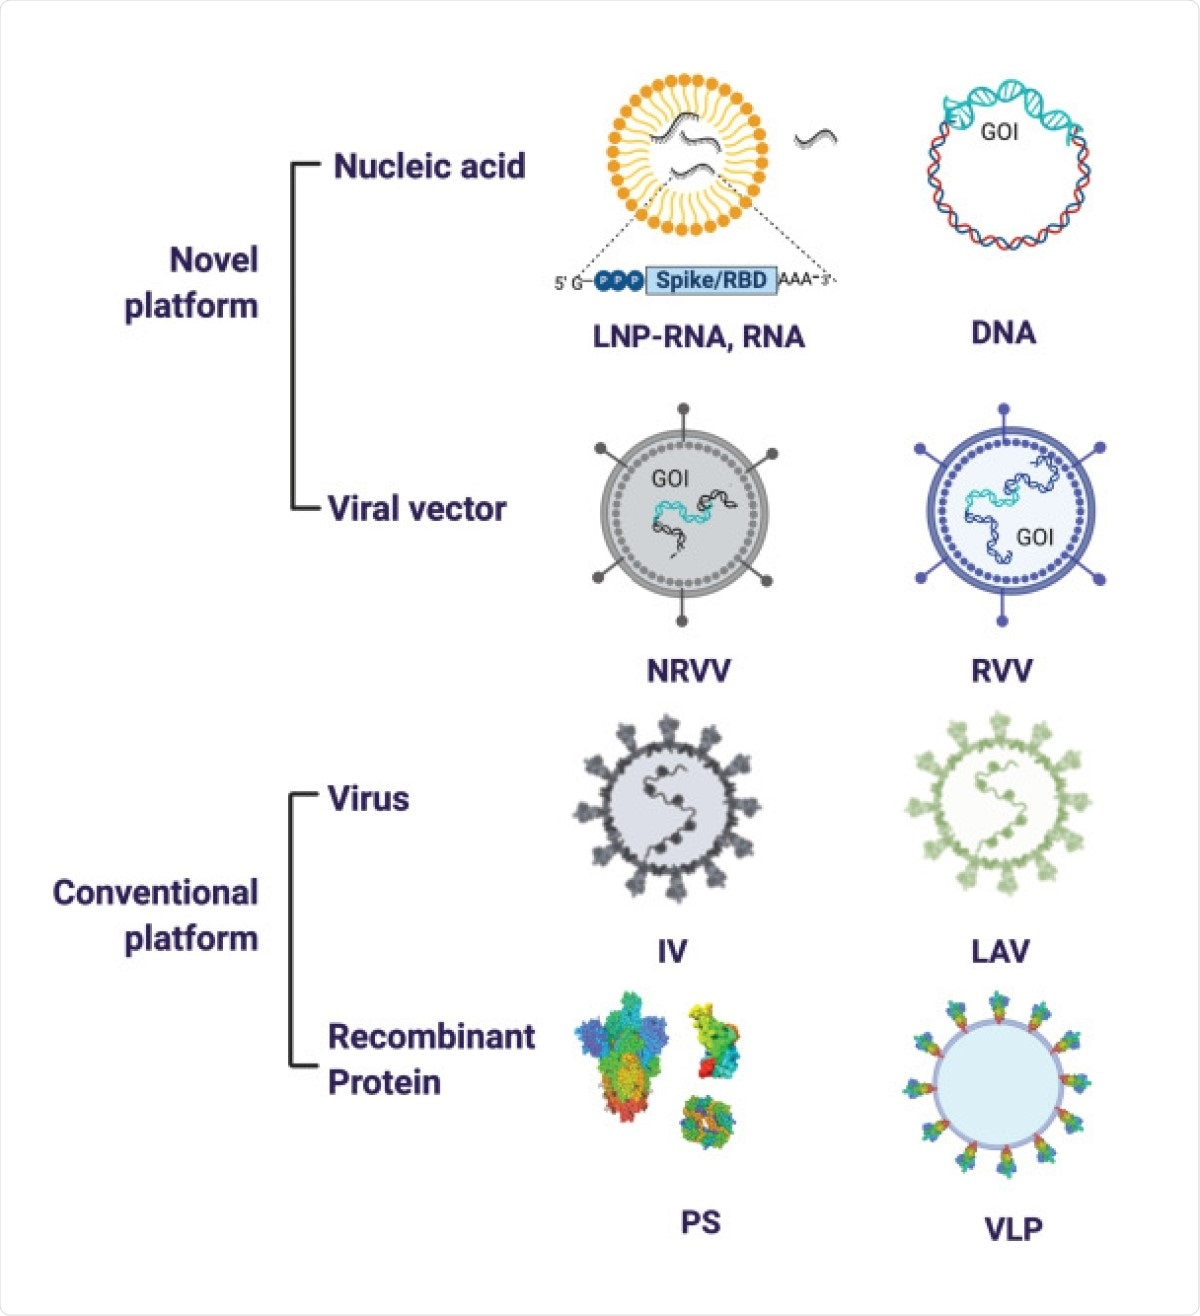 SARS-CoV-2 vaccine platforms. The major vaccine platforms that are being used in current SARS-CoV-2 vaccine candidates. A combination of conventional and novel vaccine platforms are being tested. Conventional vaccine platforms that have been licensed for human use are the inactivated virus (IV), live attenuated virus (LAV), and recombinant protein-based (Protein Subunit (PS)). Novel vaccine platforms include nucleic acid based (DNA and RNA encoding the gene of interest (GOI)) and viral vector-based (non-replicating viral vector (NRVV) and replicating viral vector (RVV).